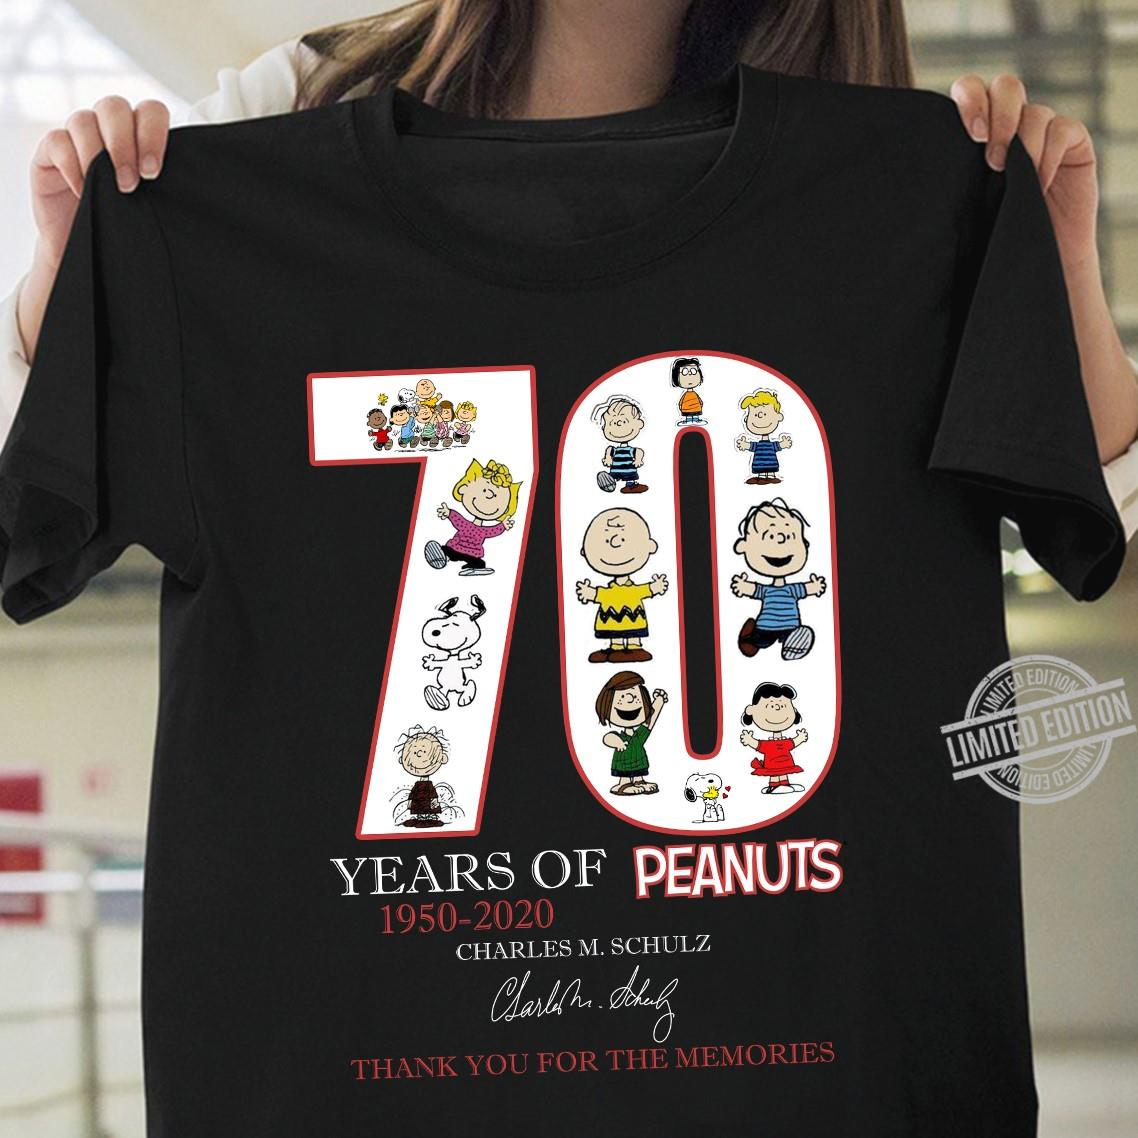 70 Years Of Peanuts 1950 2020 Charles M. Schulz Signature Thank You For The Memories Men T-Shirt